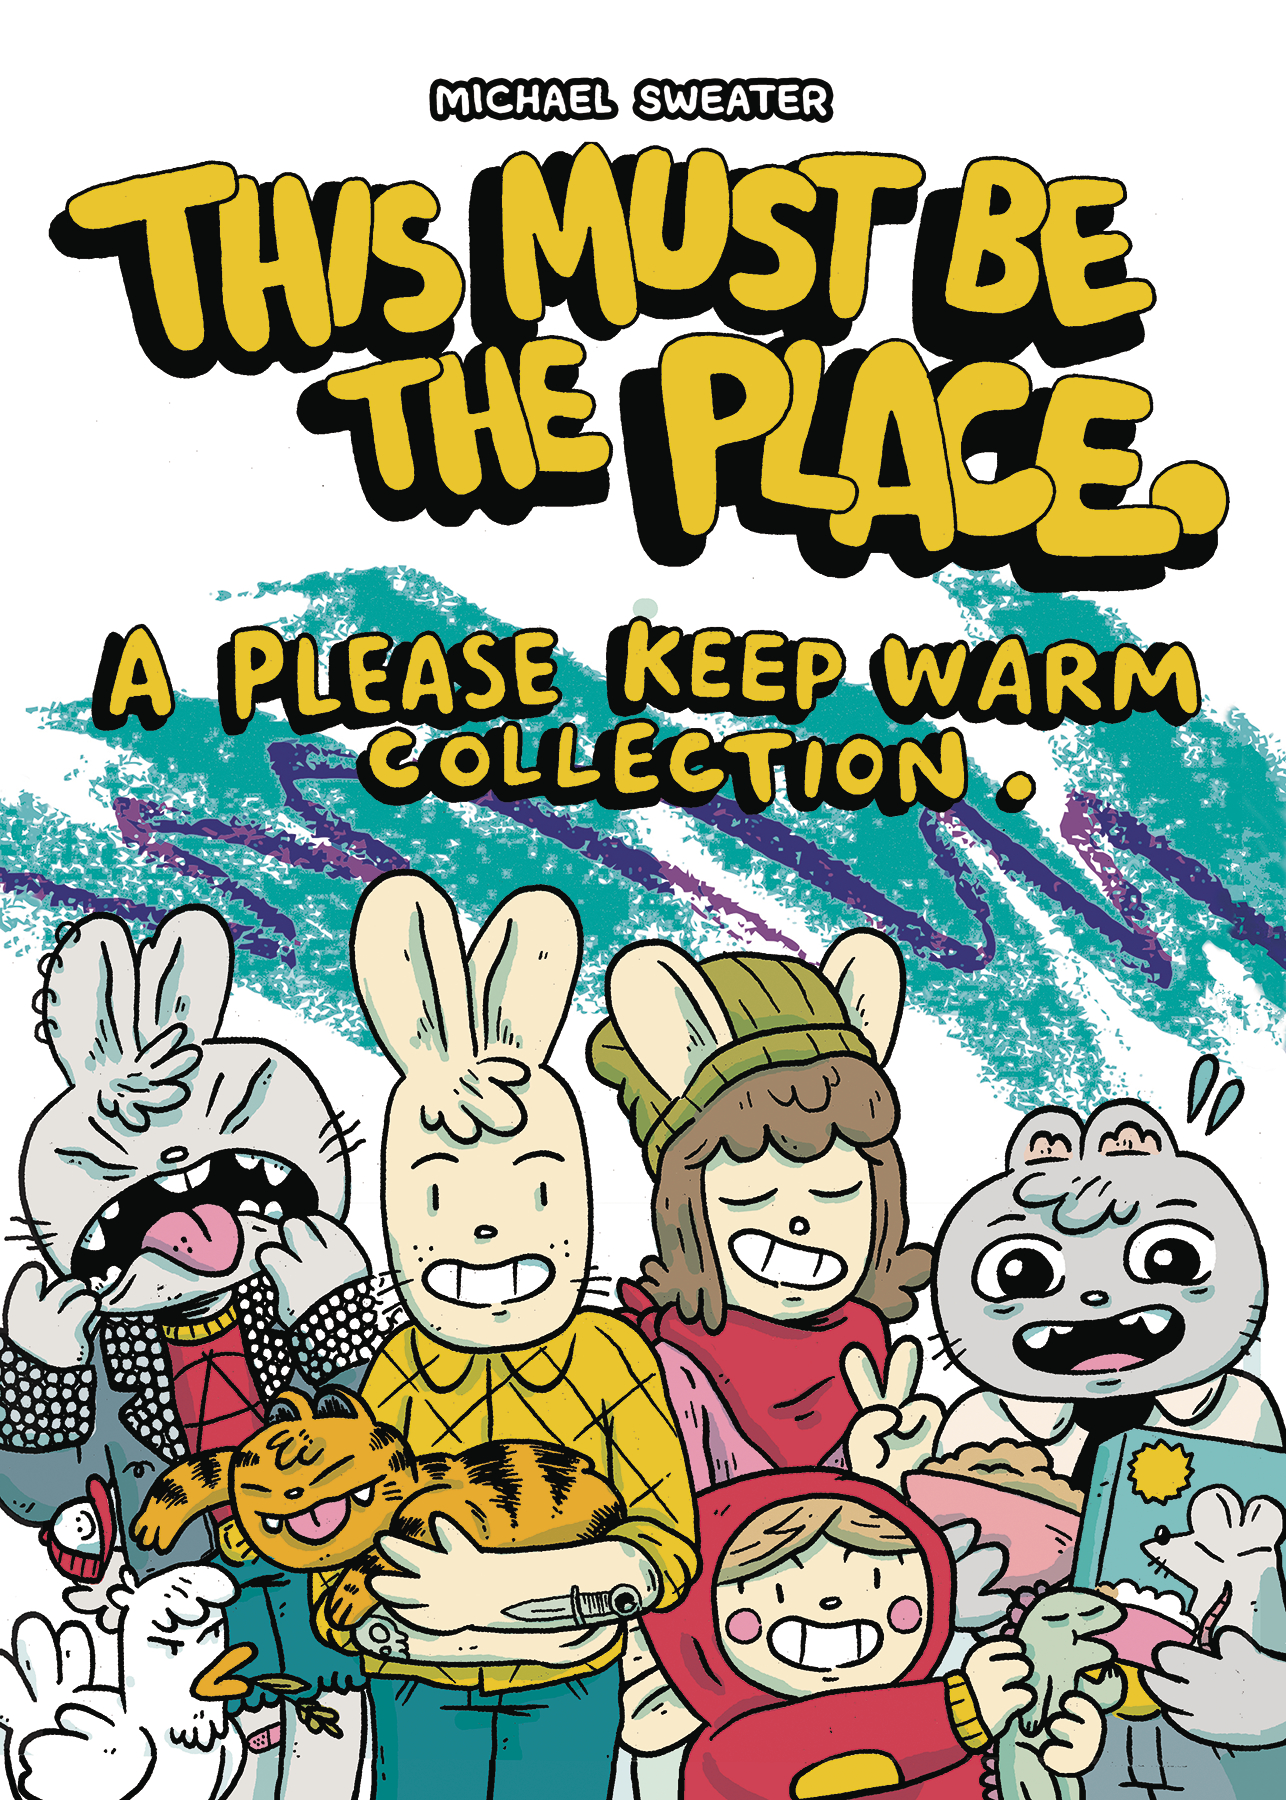 PLEASE KEEP WARM COLLECTION GN VOL 01 THIS MUST BE PLACE